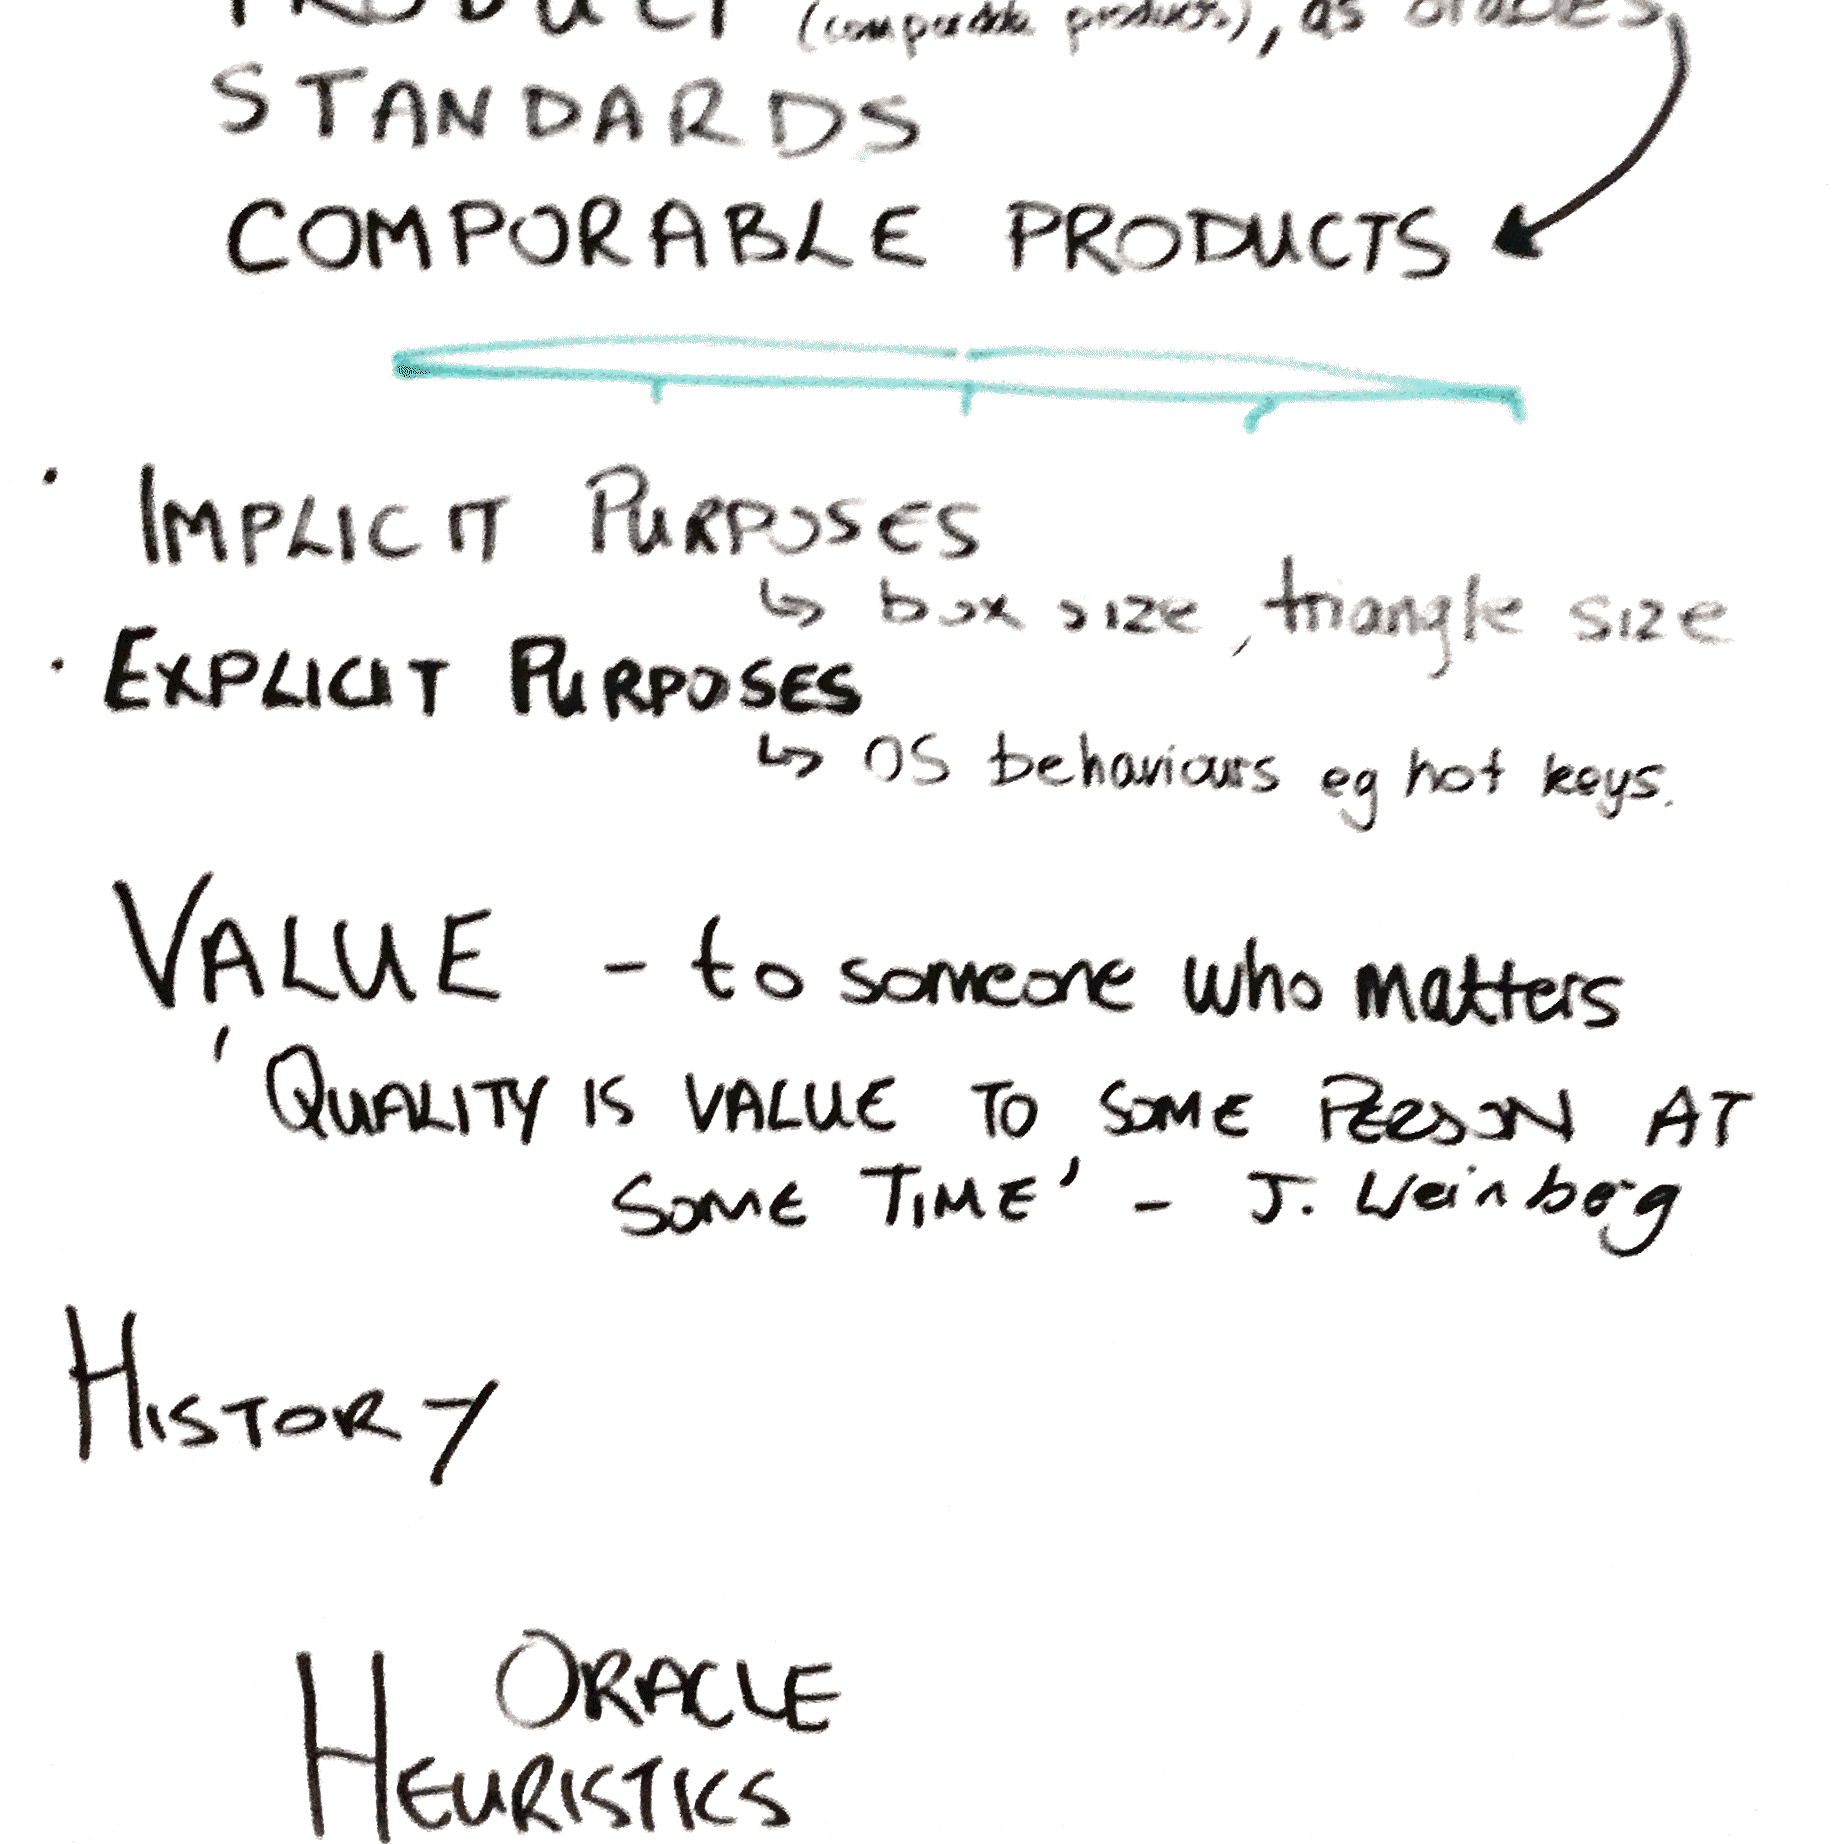 RST - Heuristics and Oracles